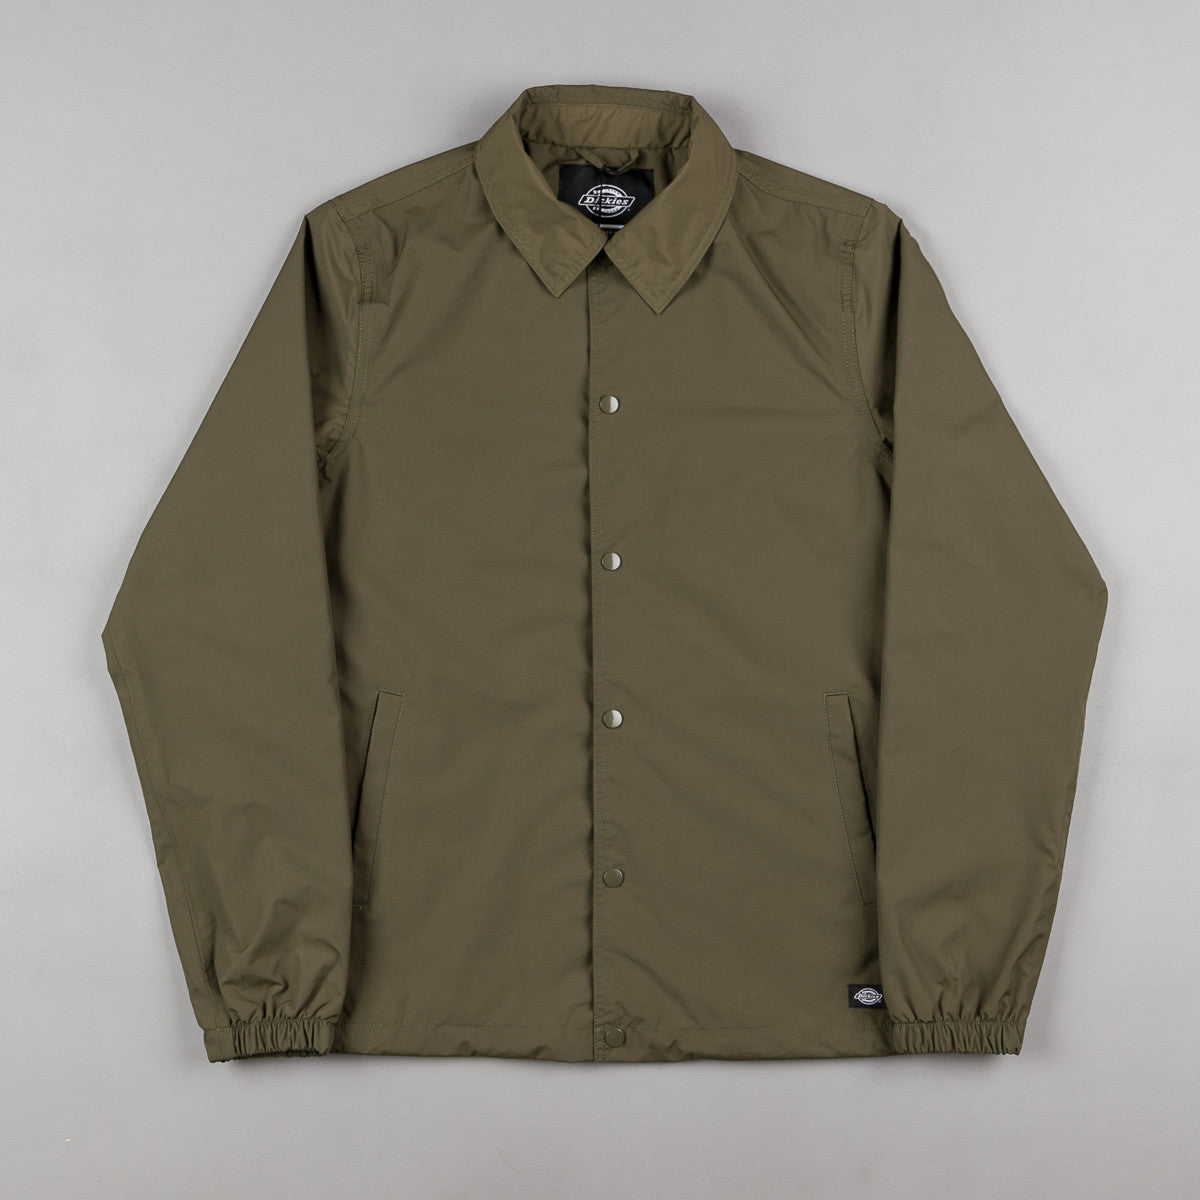 Dickies Torrance Jacket - Dark Olive